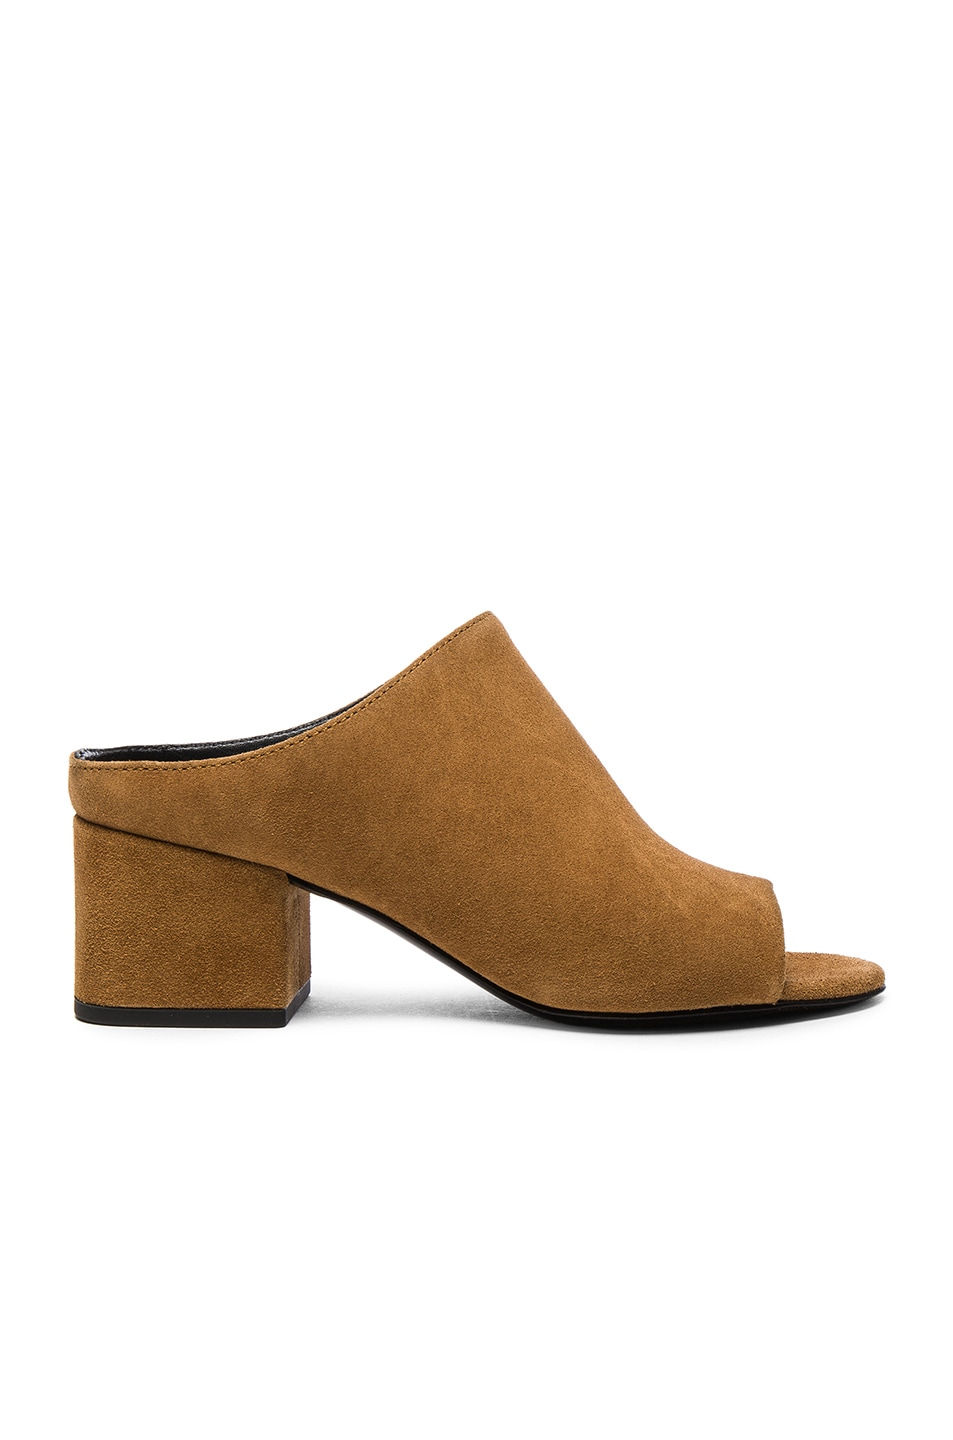 Image 1 of 3.1 phillip lim Suede Cube Heels in Oak